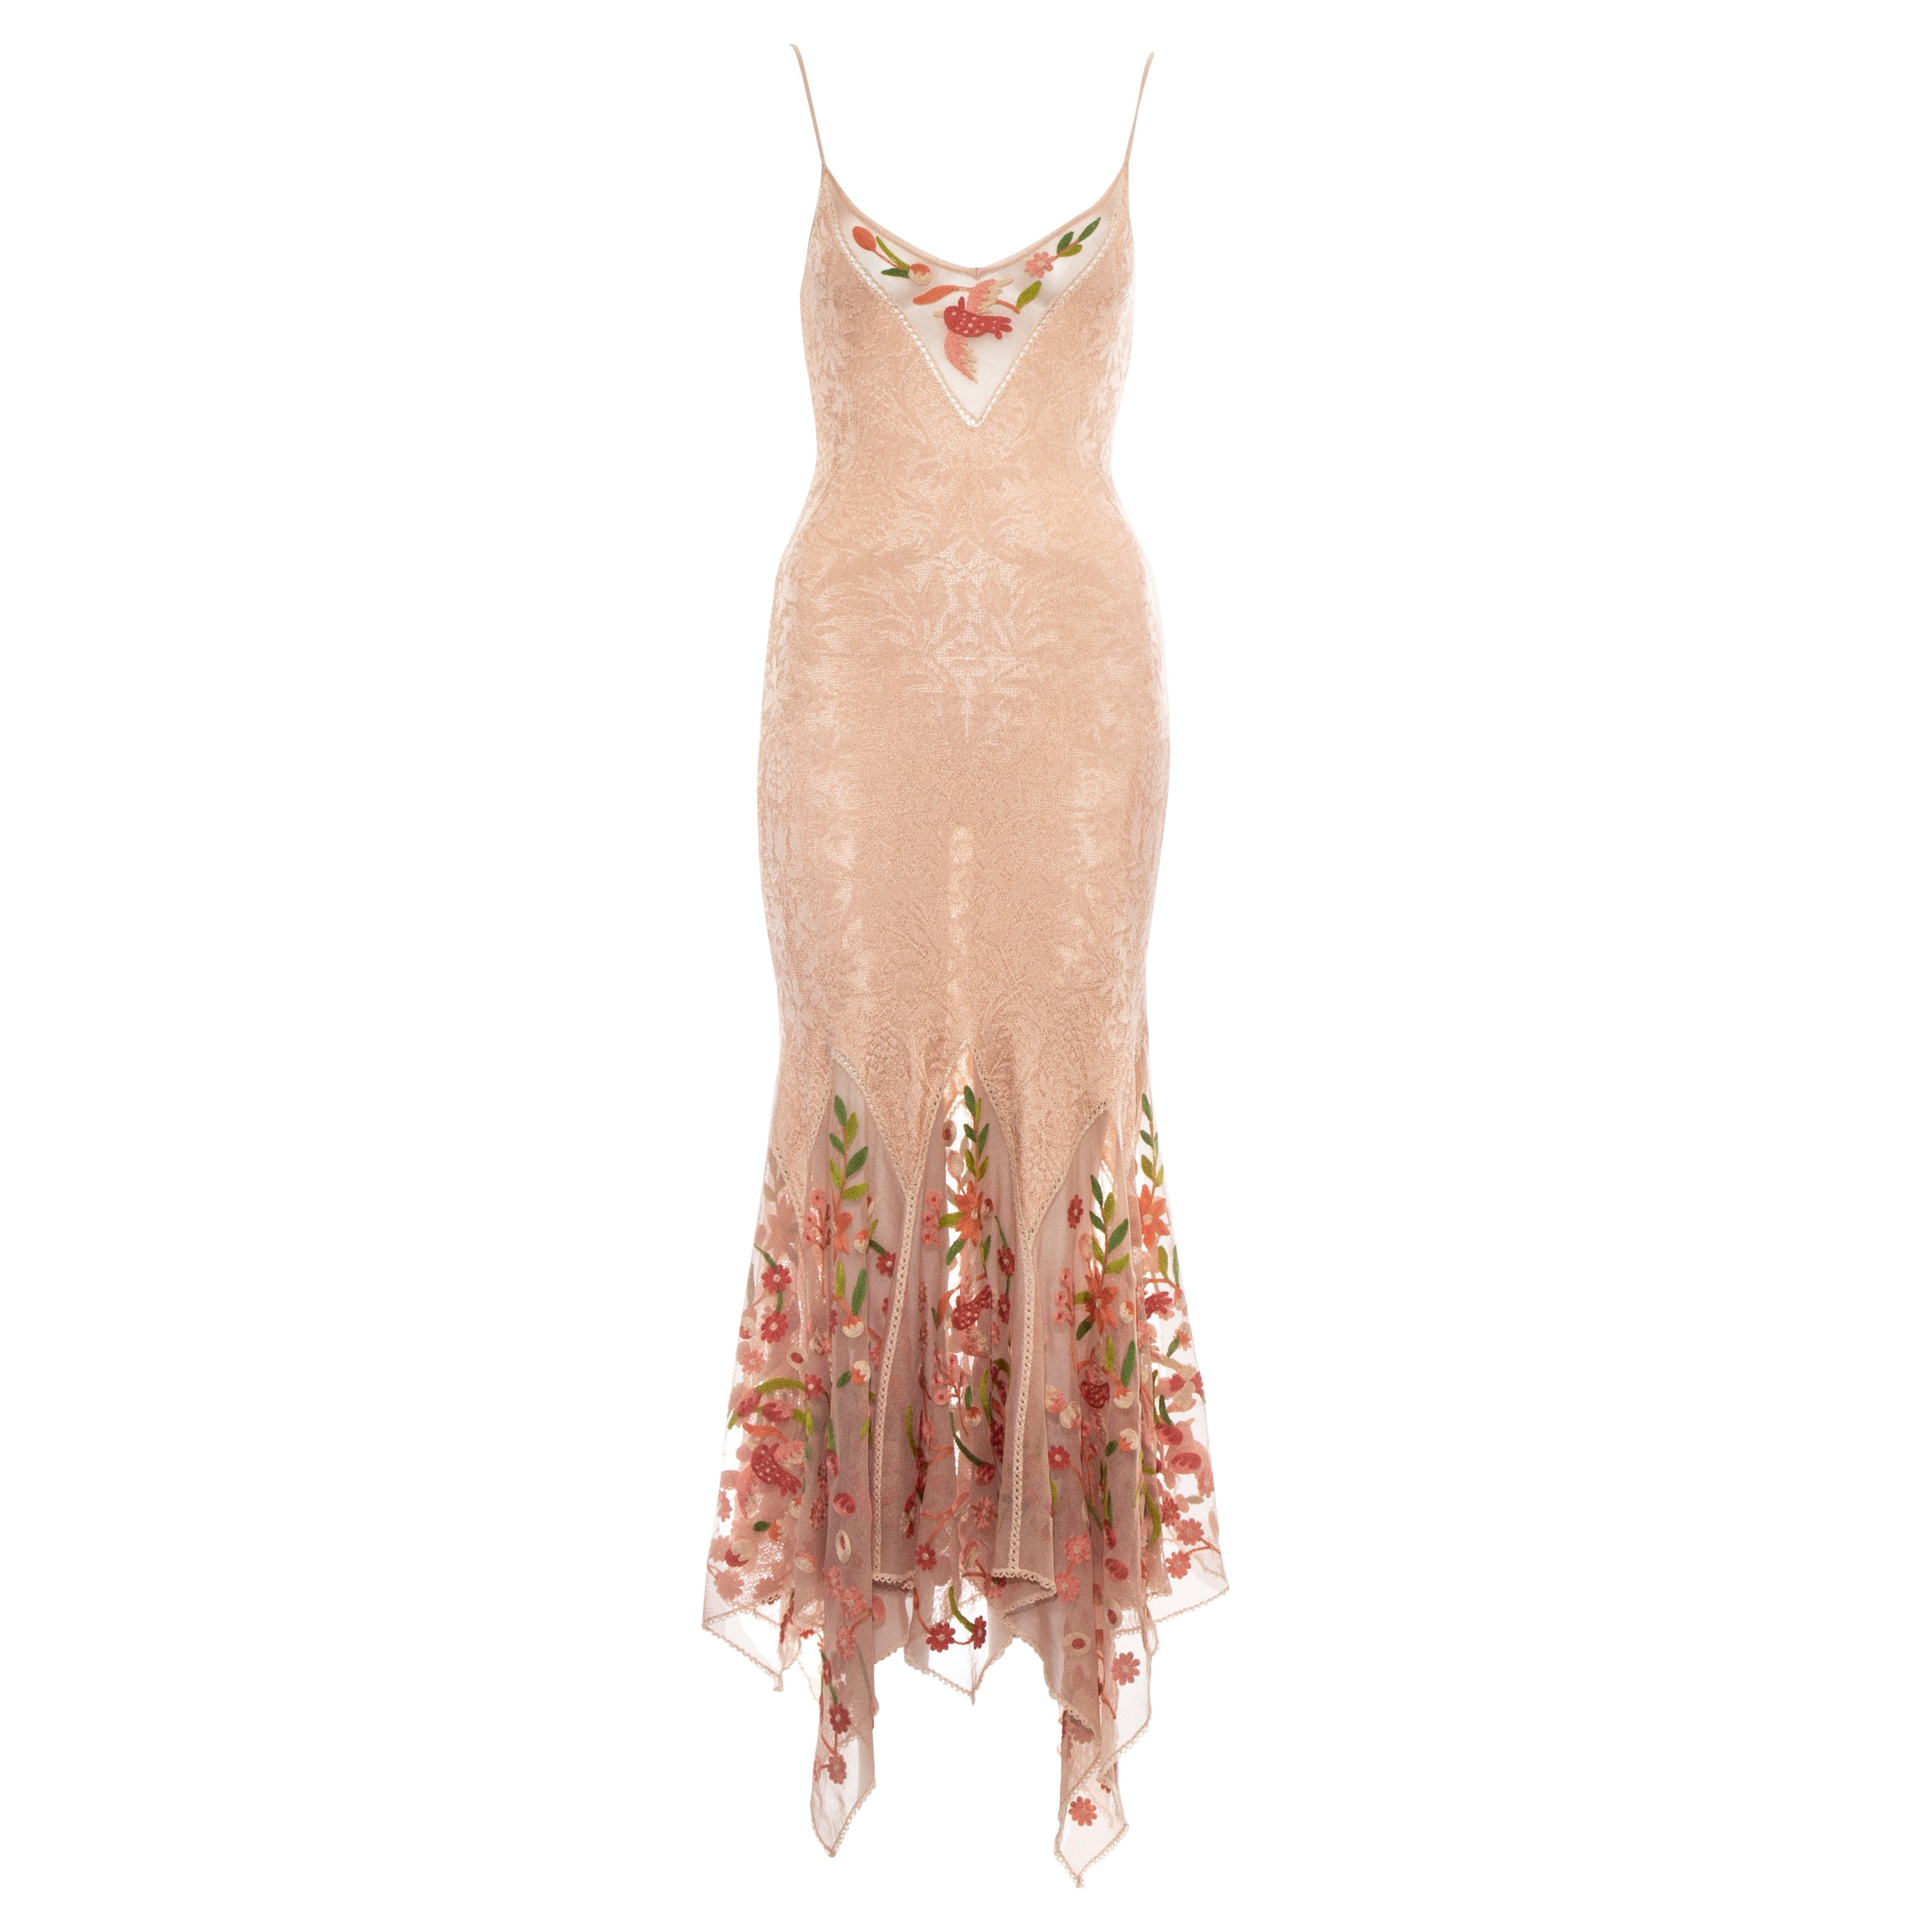 Christian Dior by John Galliano peach knitted embroidered summer dress, ss 2005